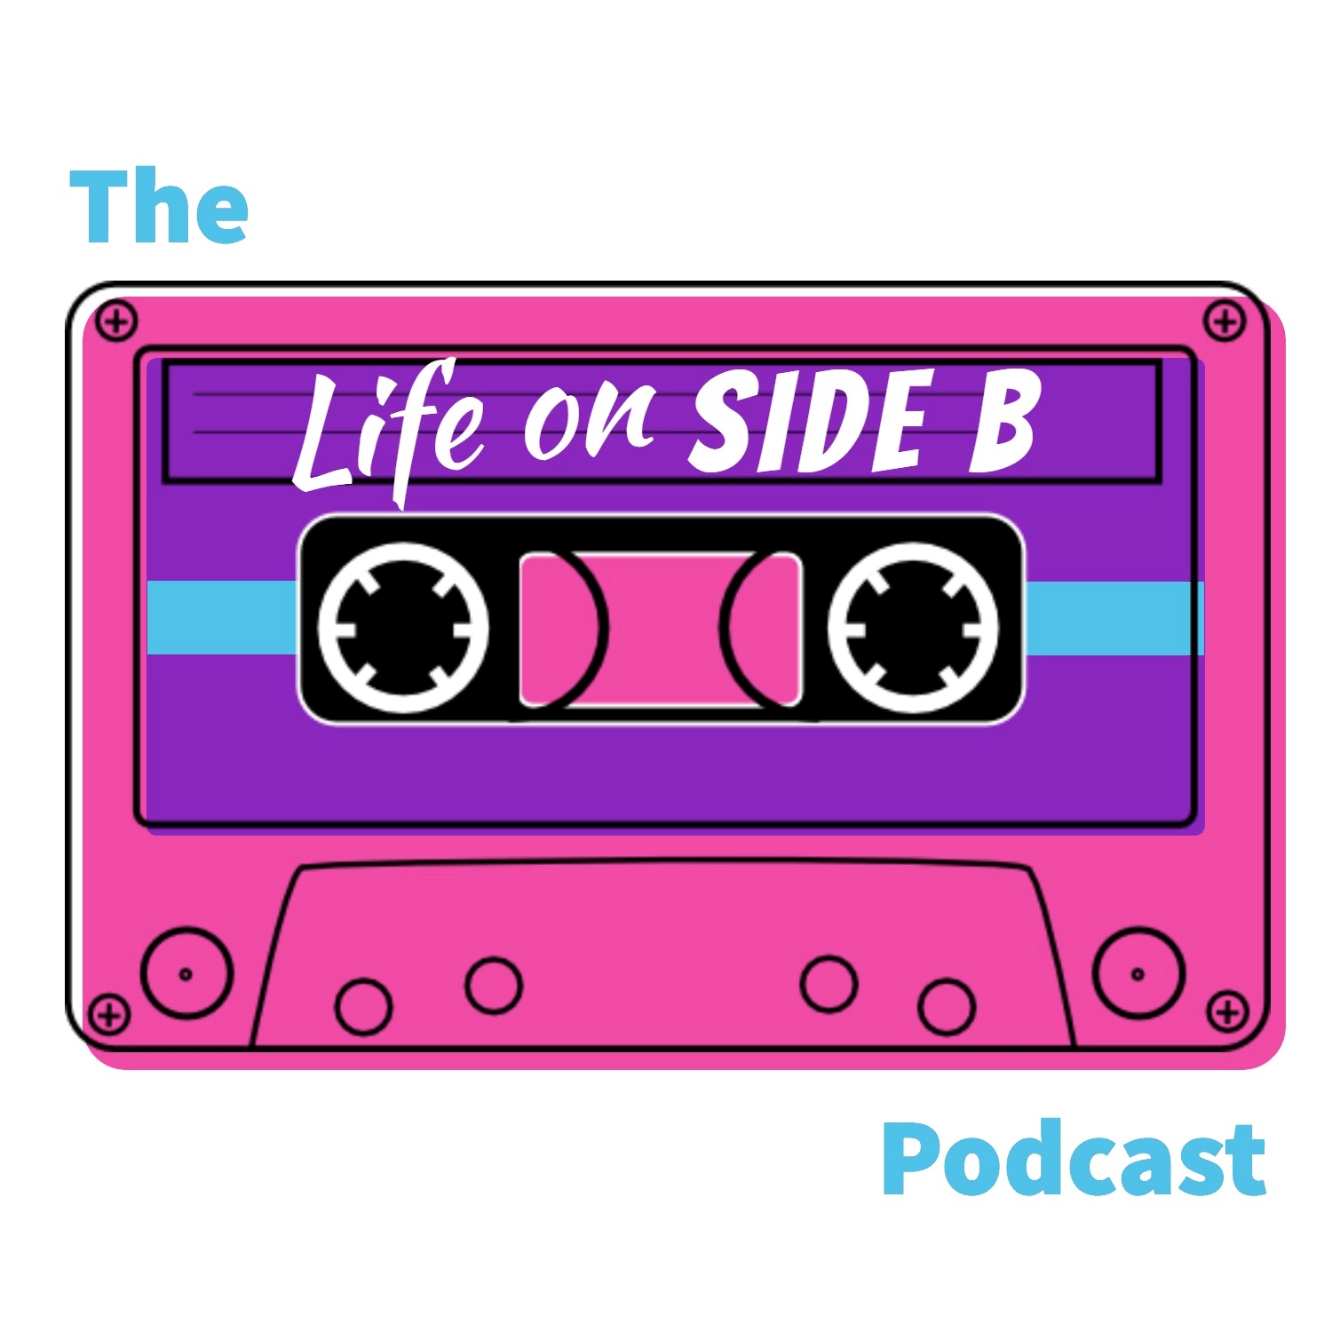 The Life on Side B Podcast